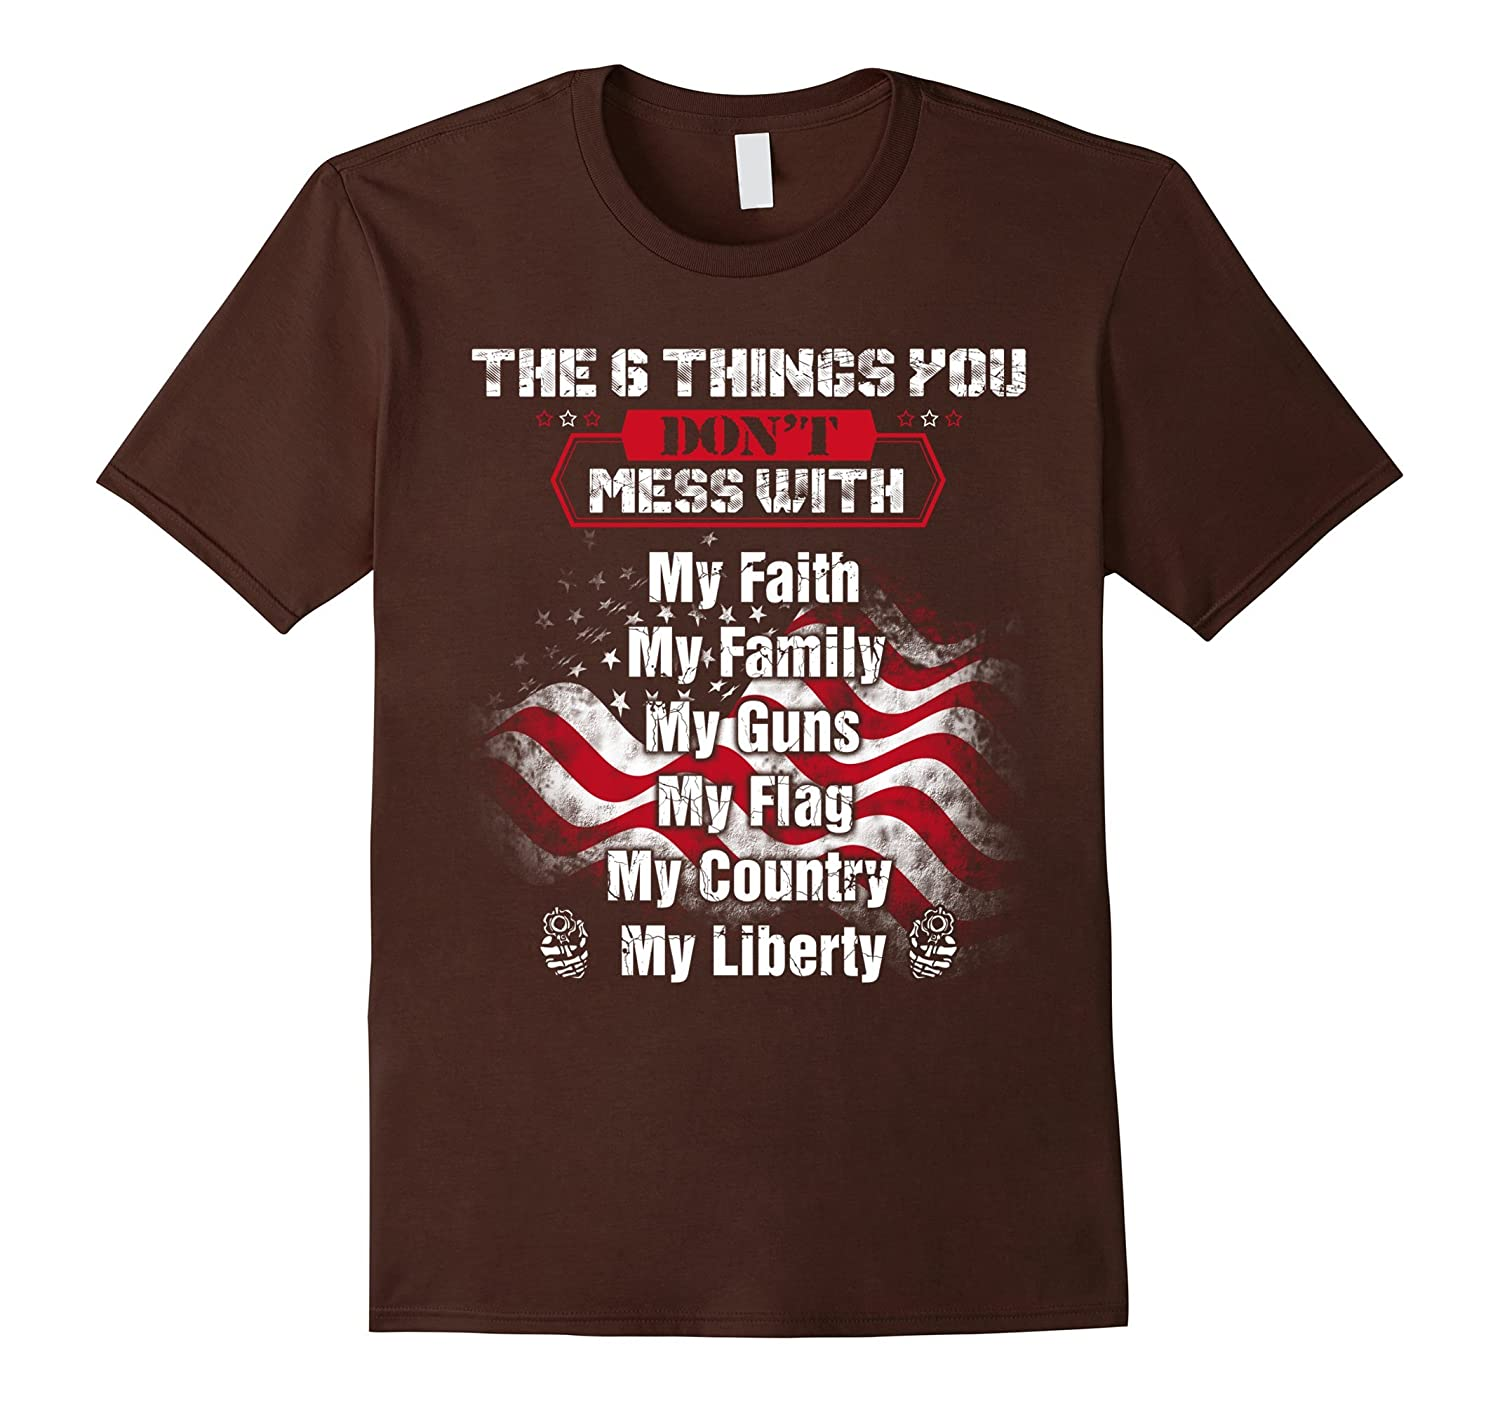 6 THINGS DONT MESS WITH-BN